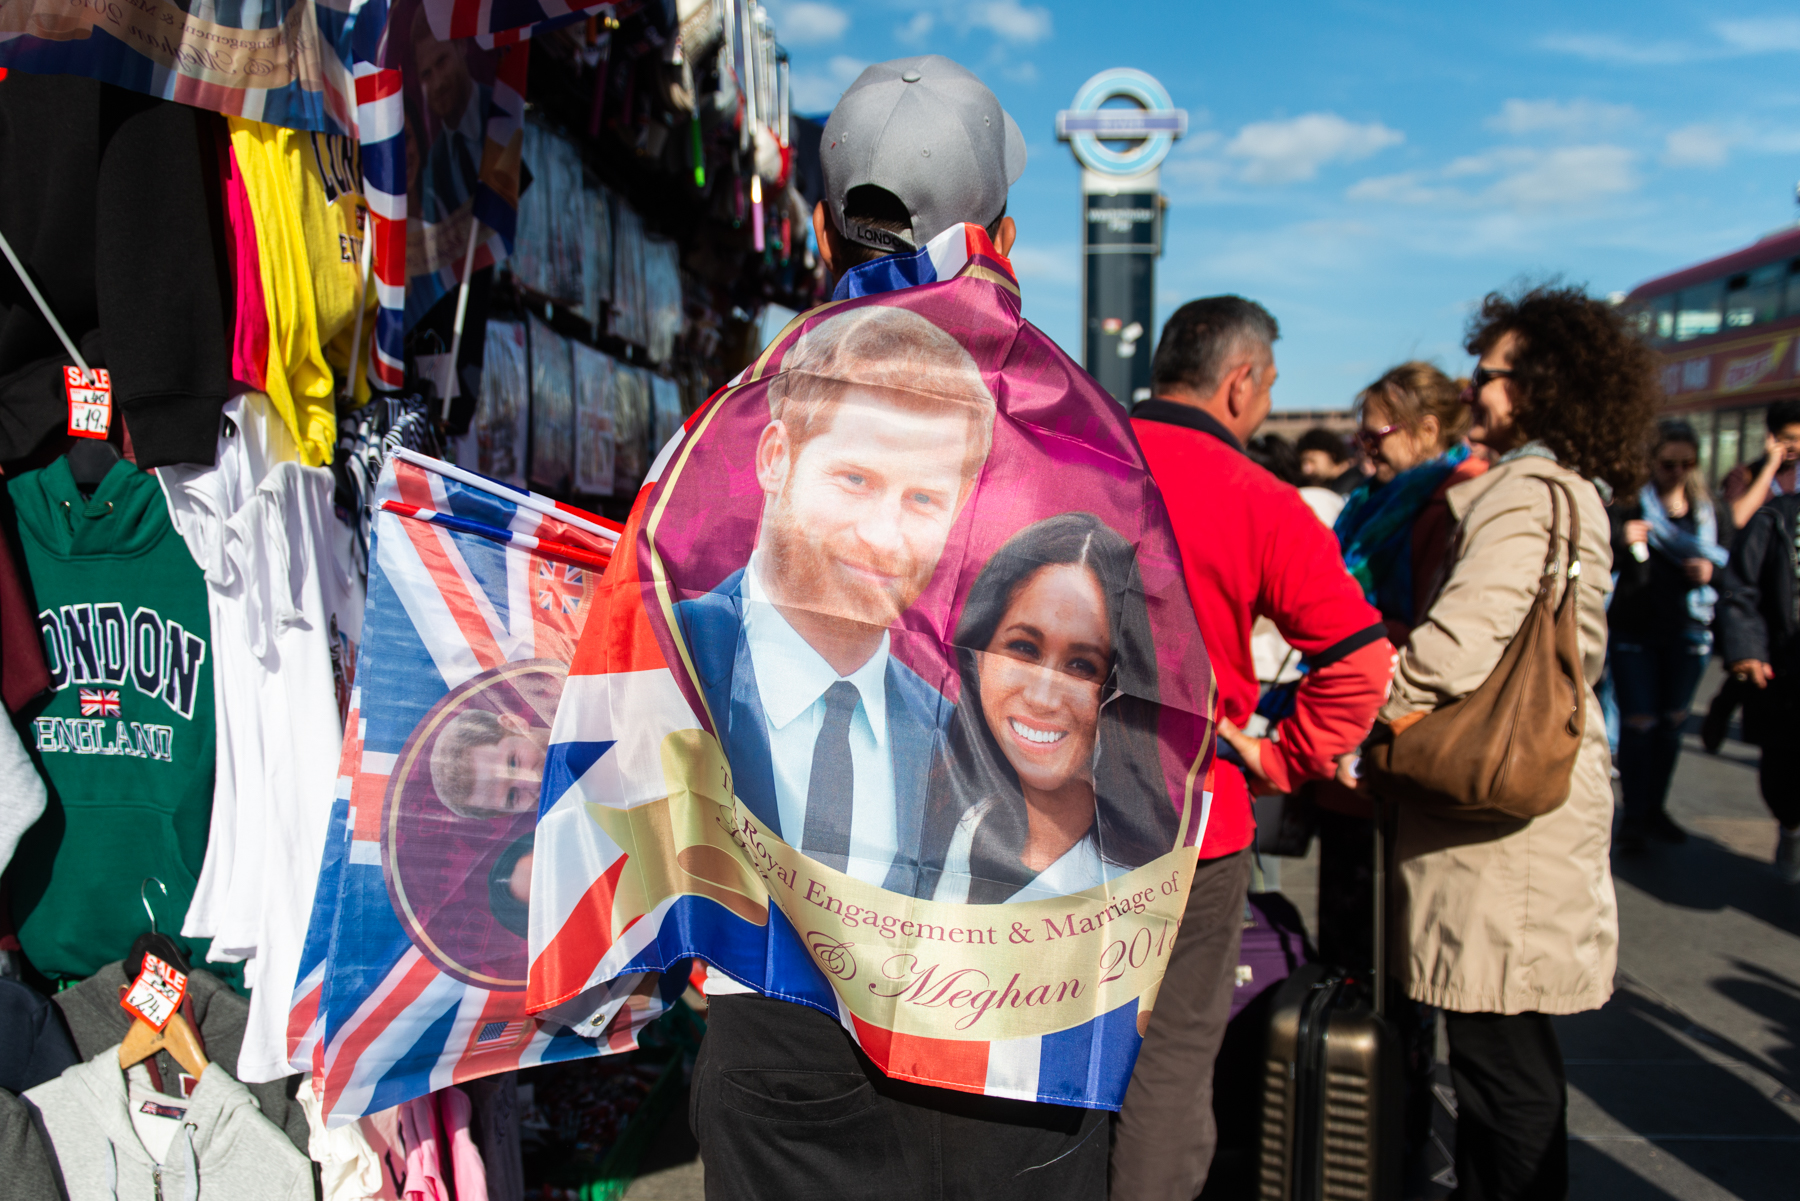 Our lovely photographer Chona Kasinger{ }is on the ground in London and is capturing the days, or should we say mayhem, leading up the Royal Wedding on May 19, 2018. Stay tuned for more photos post wedding! (Image: Chona Kasinger / Seattle Refined).